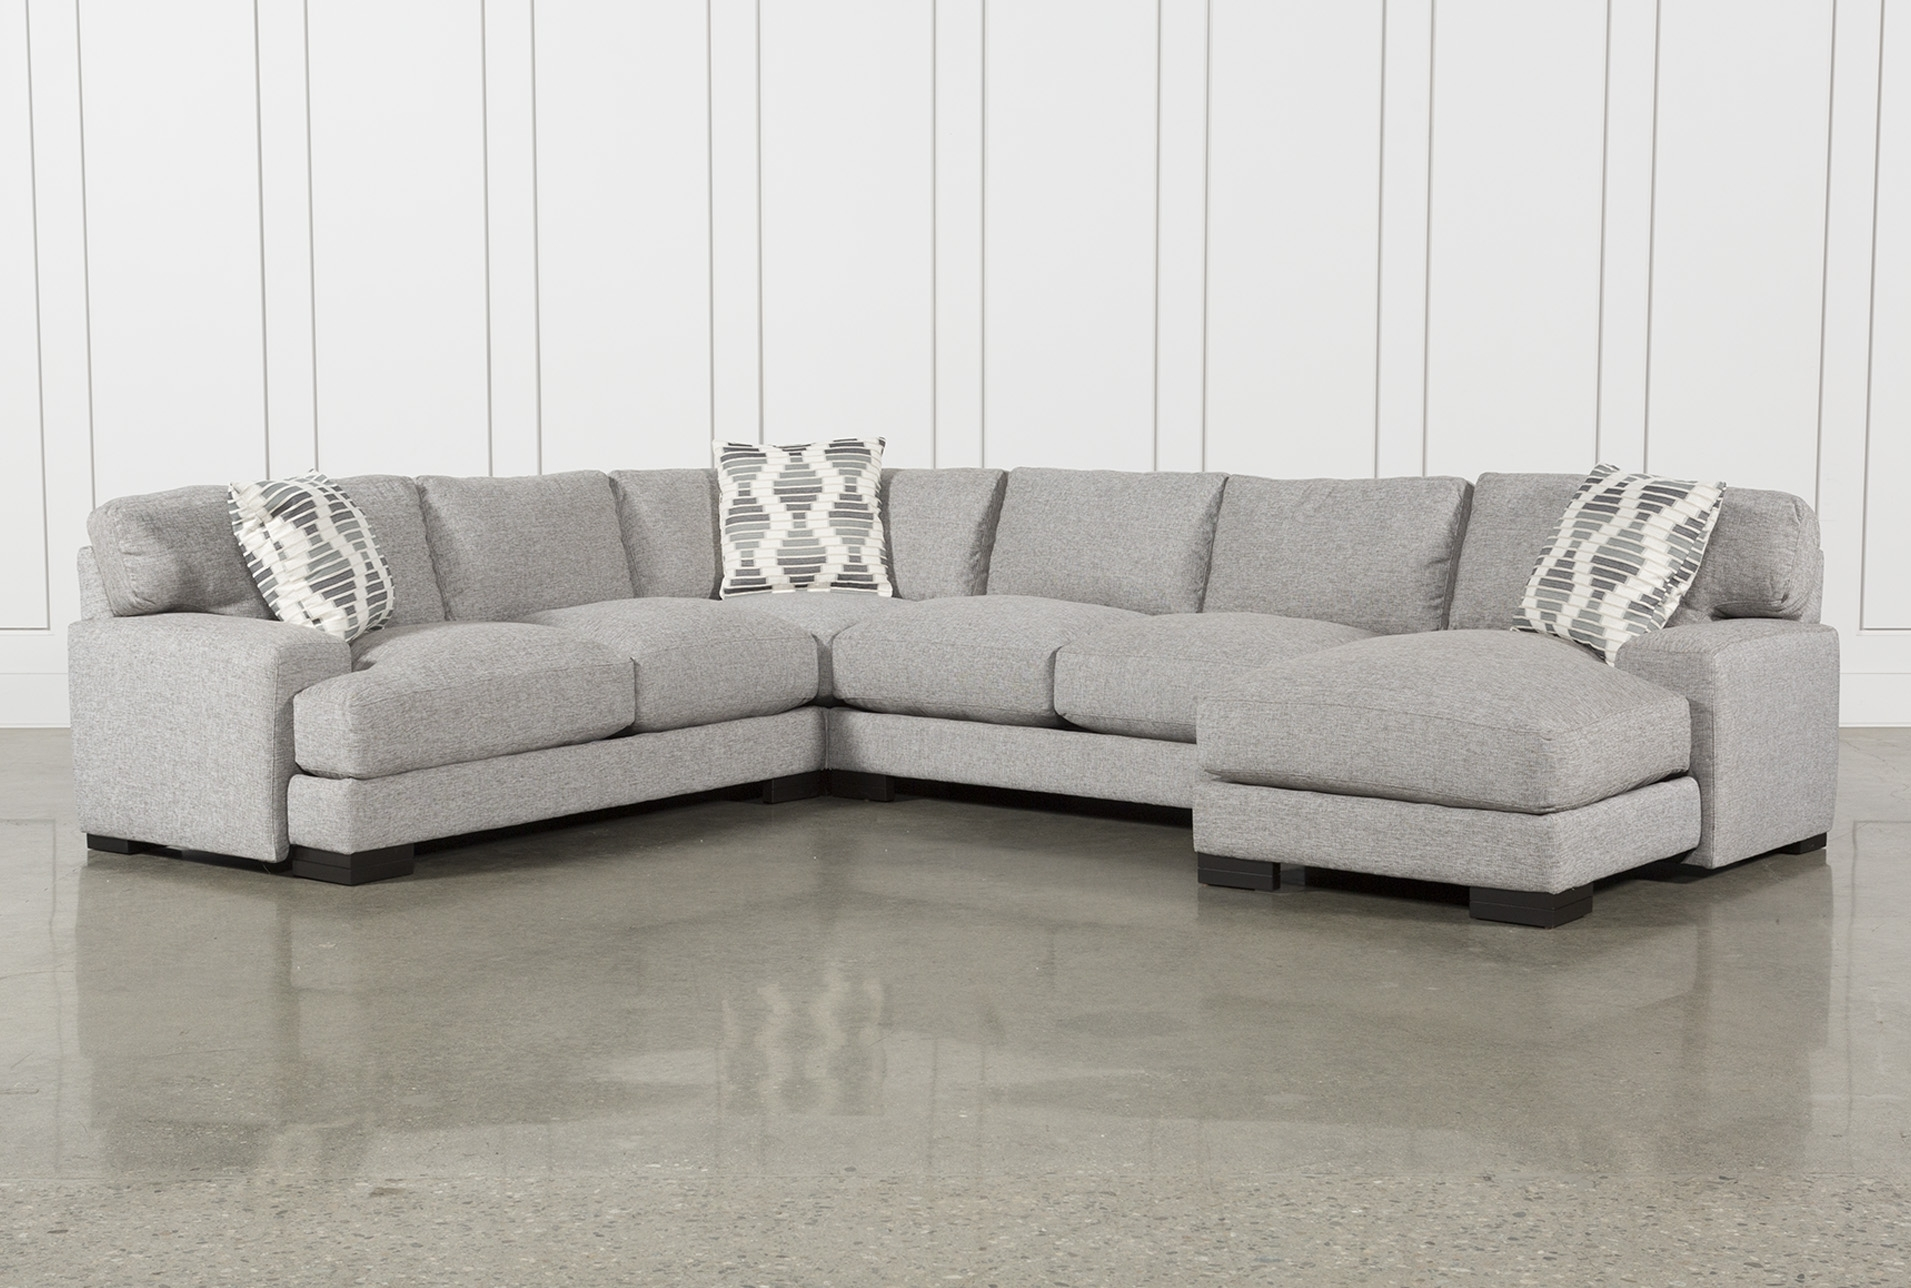 Harper Foam 3 Piece Sectional W/raf Chaise inside Aquarius Light Grey 2 Piece Sectionals With Raf Chaise (Image 15 of 30)